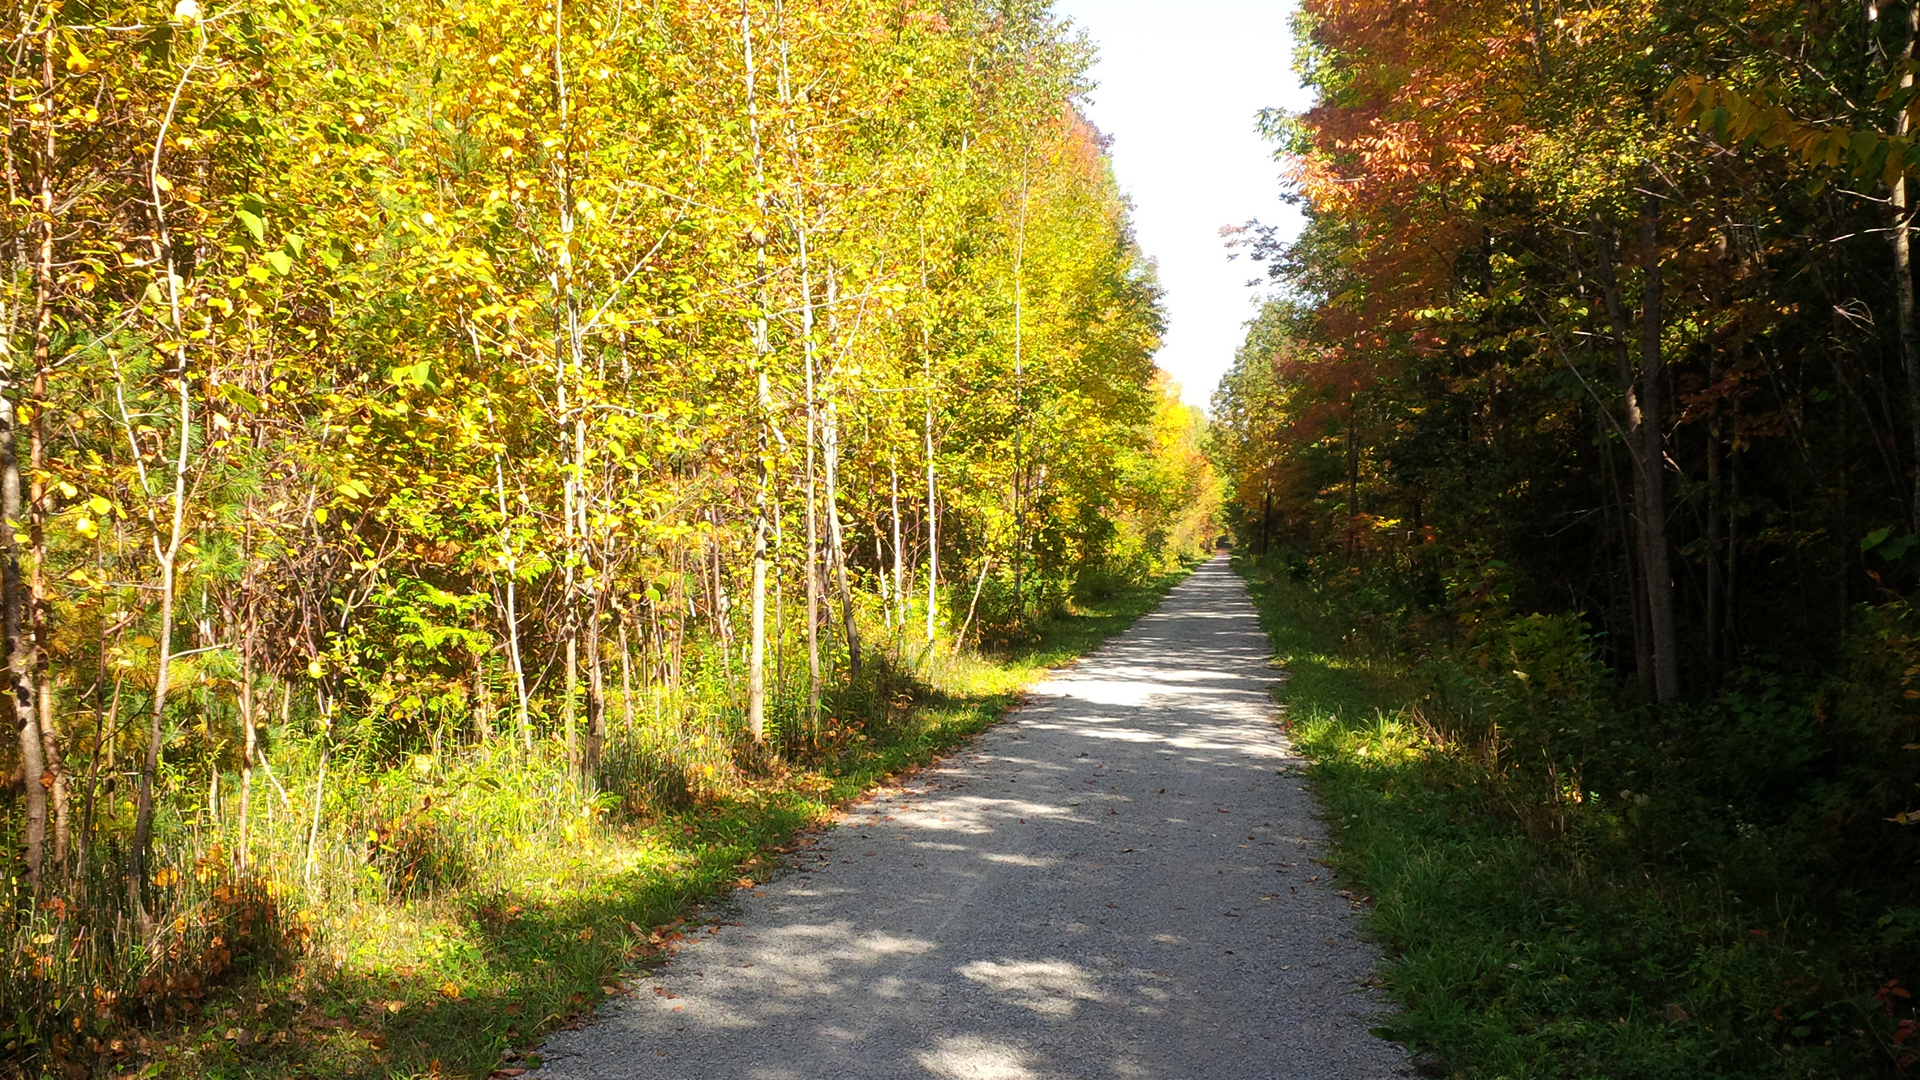 uhthoff Trail Fall - THE MOST INSTAGRAMMABLE LOCATIONS THIS FALL